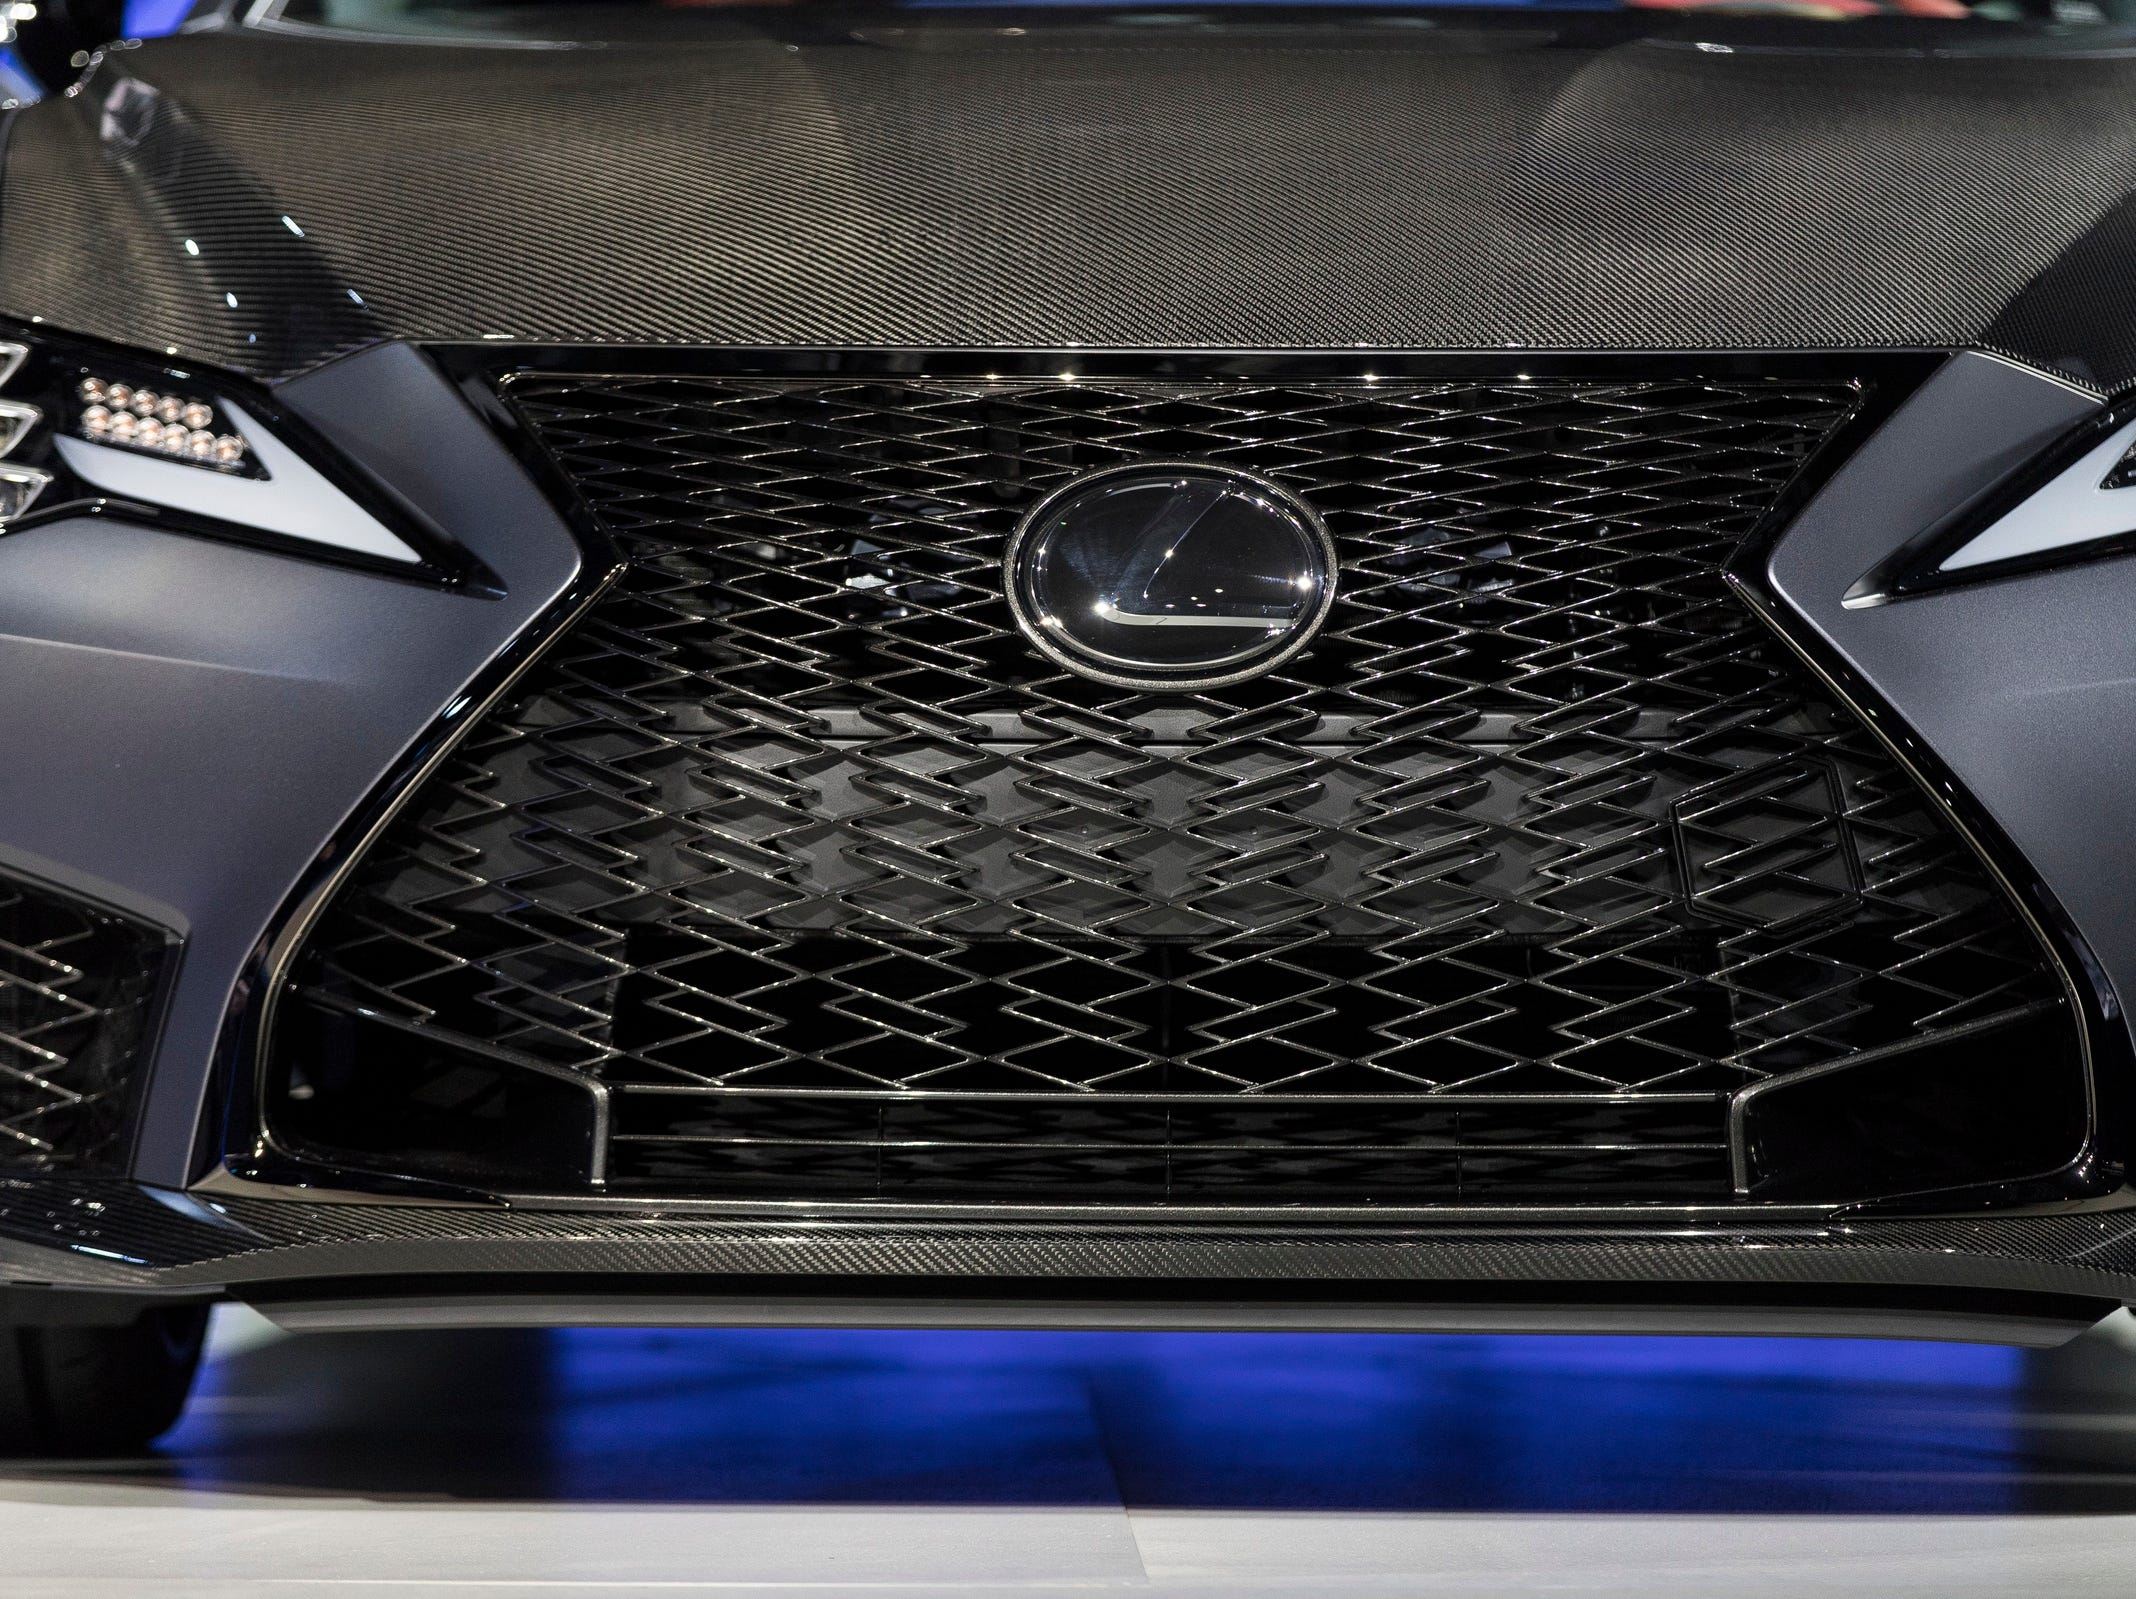 Front grill of the Lexus 2019 RCF Track Edition during the 2019 North American International Auto Show held at Cobo Center in downtown Detroit on Monday, Jan. 14, 2019.